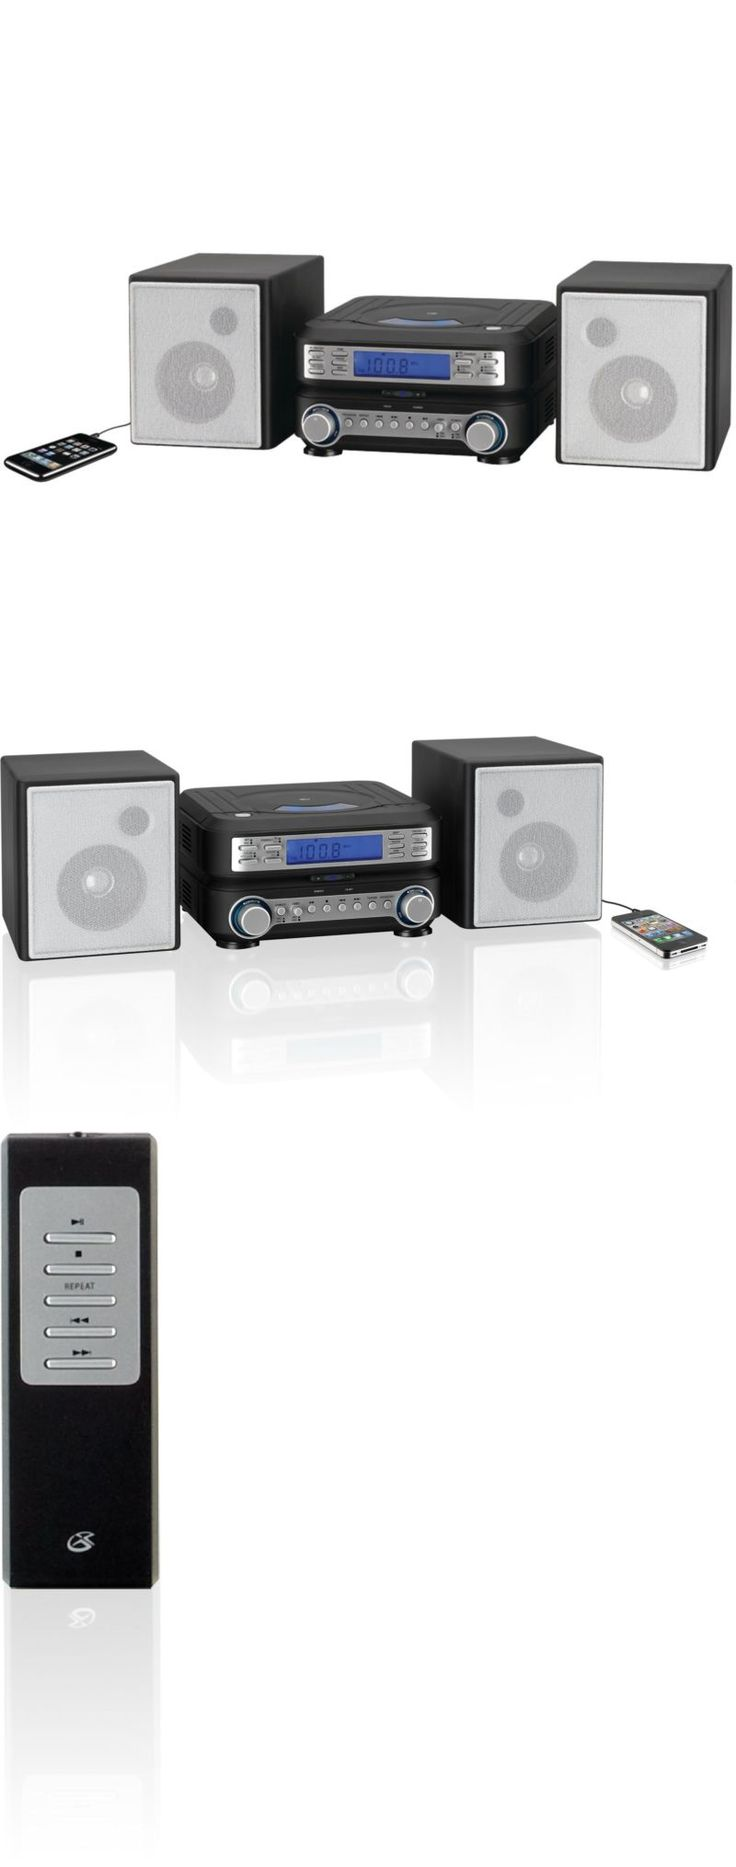 Kitchen shelves light blue jpg w 220 amp h 220 amp q 85 - Compact And Shelf Stereos New Compact Mini Stereo System Shelf Cd Player Mp3 Am Fm